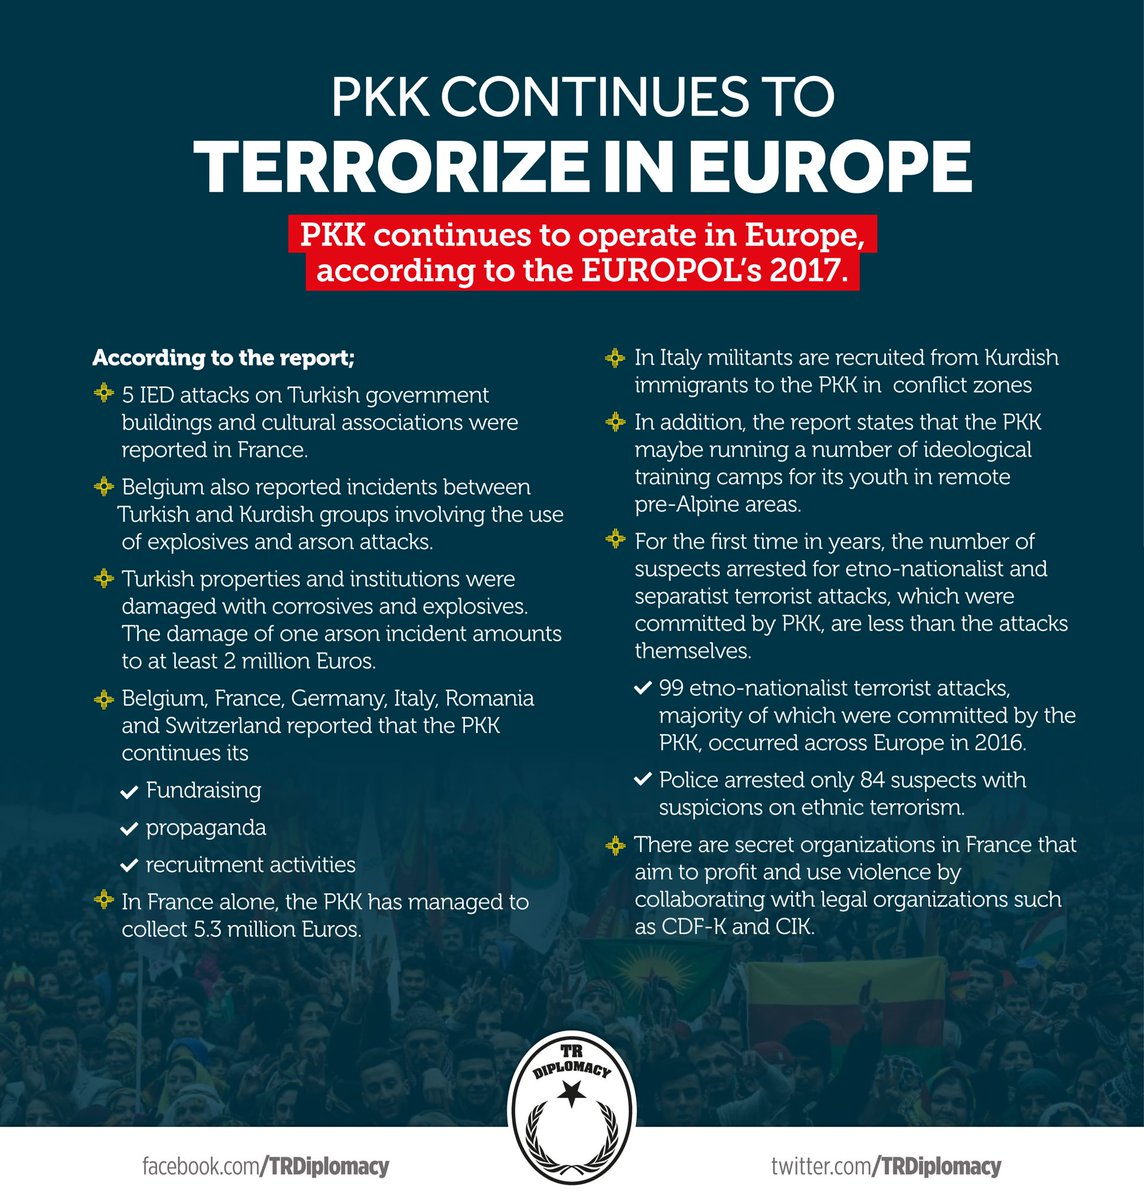 The actions of the terror organization PKK in Europe according to Europol 2017 report